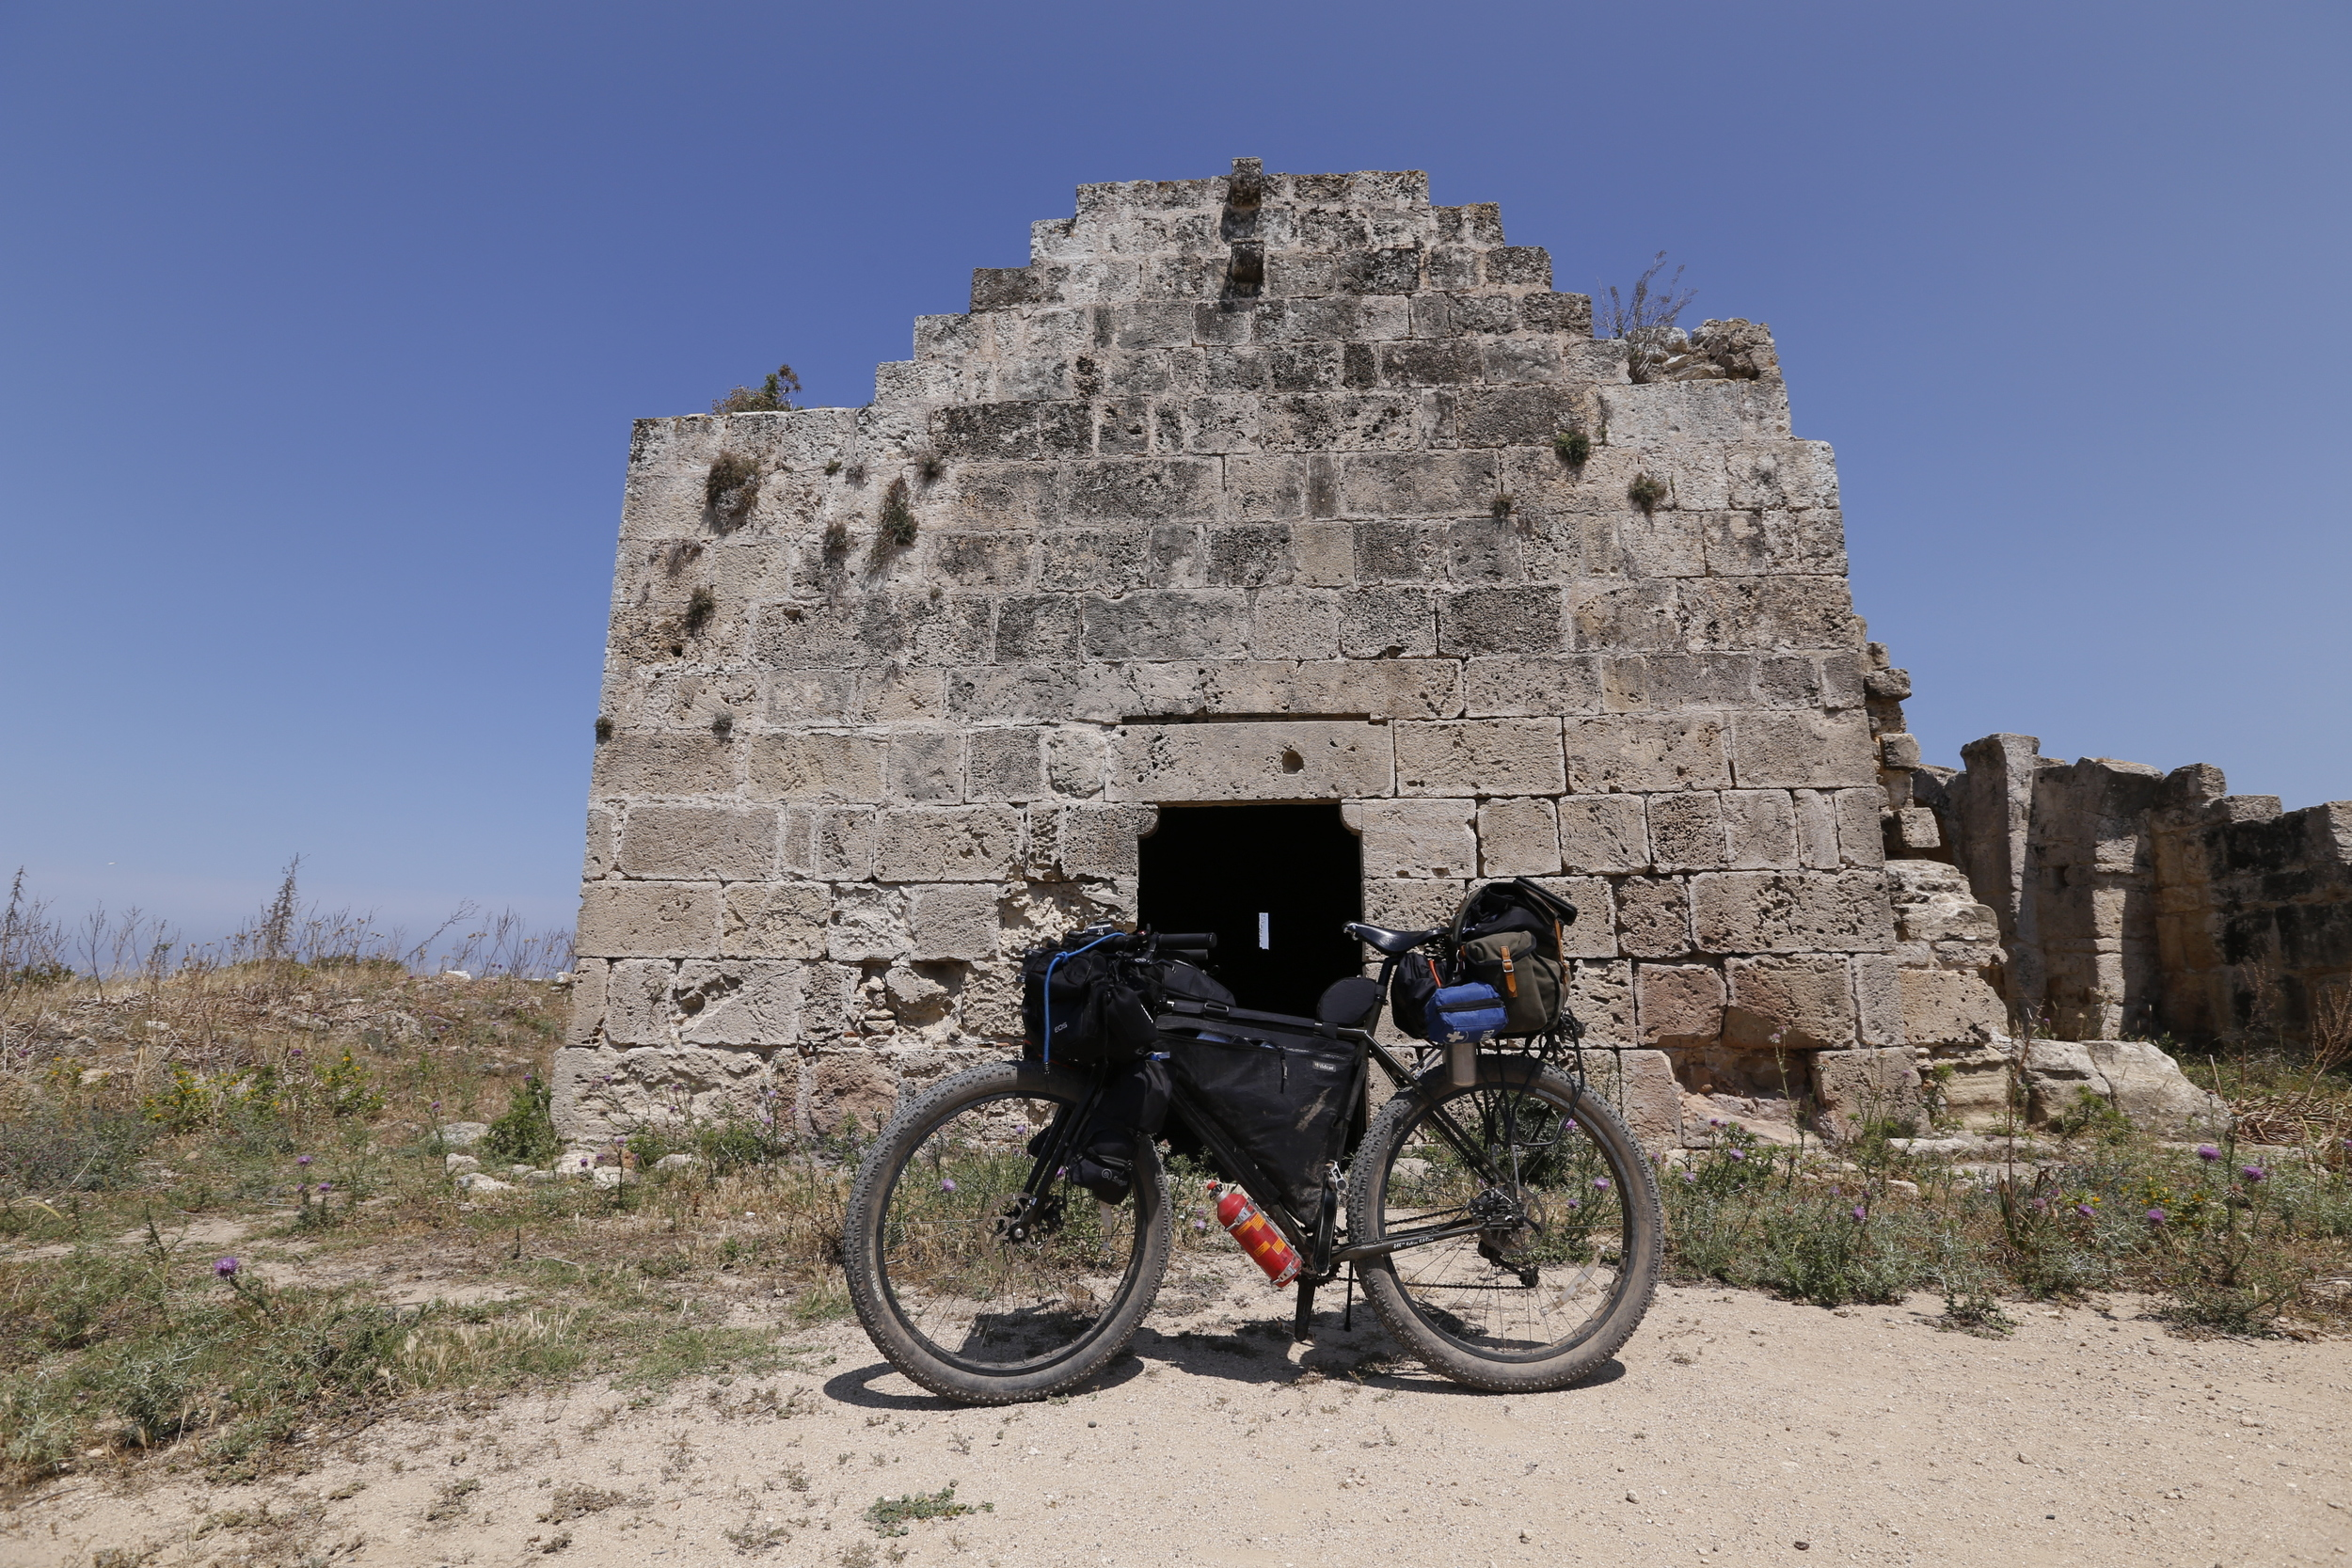 north cyprus, kyrenia mountains, go north cyprus, bicycle touring apocalypse, surly, surly ecr, bicycle touring, cycling, jack macgowan, apocaloon, adventure, wildcat gear, revelate designs, brooks saddle, trangia, knards, fat bike, kyrenia mountain trail, canon, canon 6d, canon photography, bikepacking blog, bikepacker, cyclist, surly, surly ecr, church, ruins, castle, history, steel frame